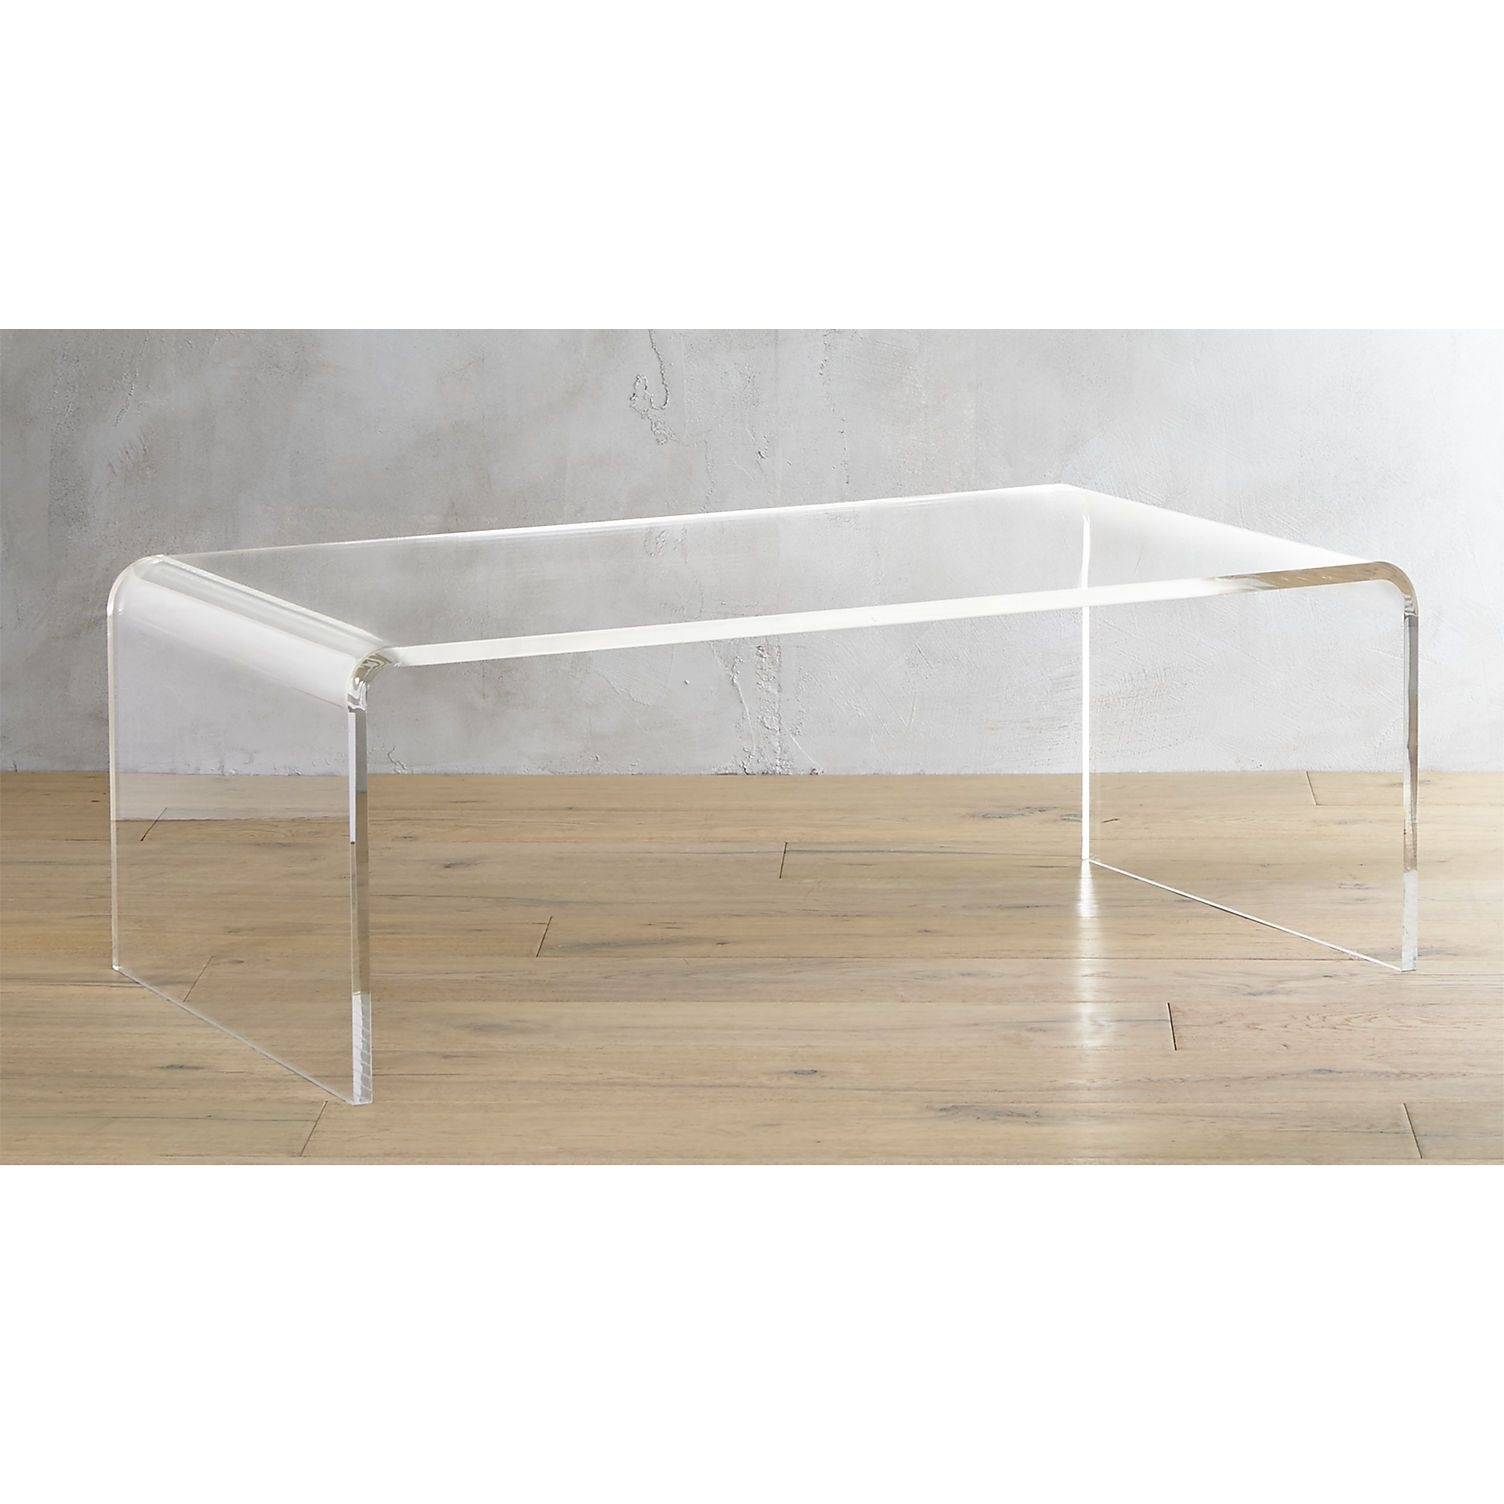 Acrylics, Glass Table And Coffee Regarding Well Known Flat Black And Cobre Coffee Tables (Gallery 4 of 20)